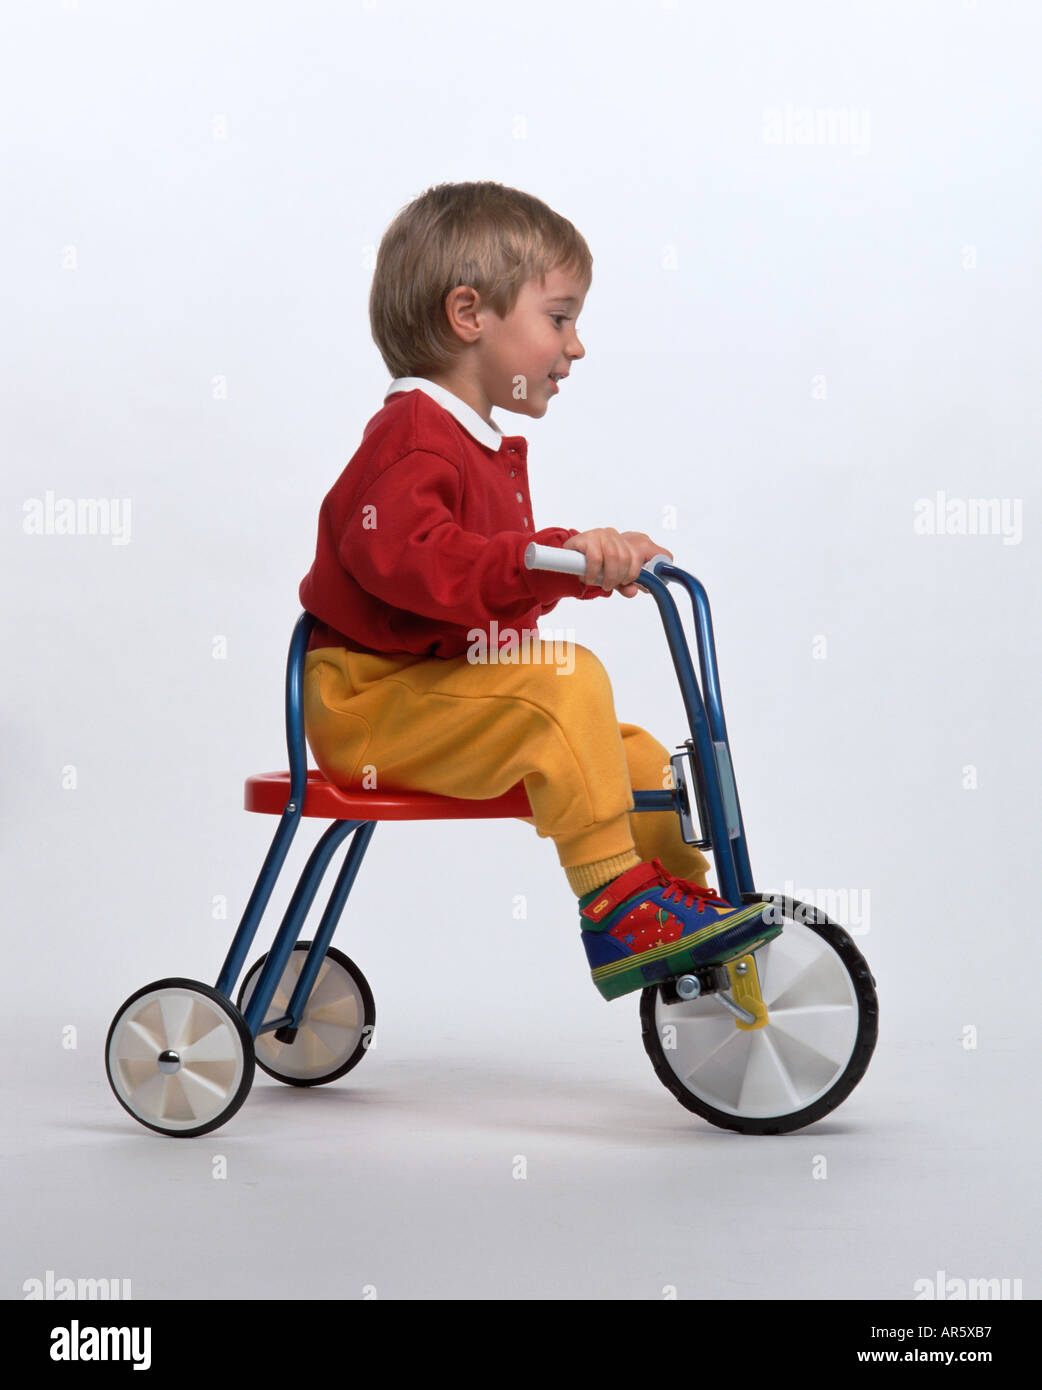 Little boy on a tricycle - Stock Image